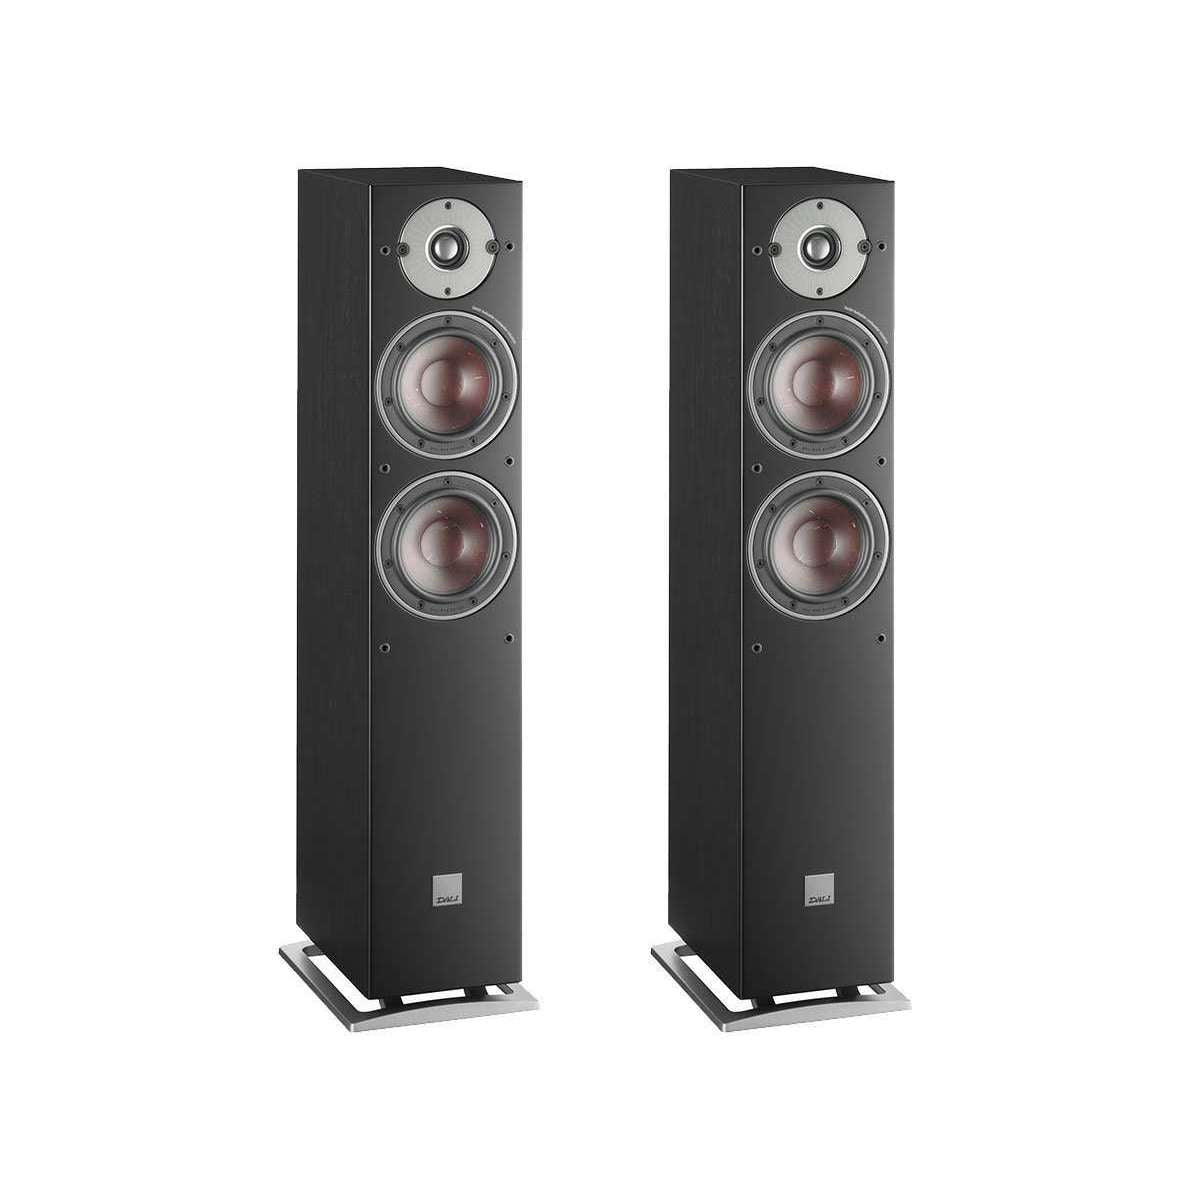 Dali Oberon 5 Floorstanding Speakers - Black - Call SpatialOnline 0345 557 7334